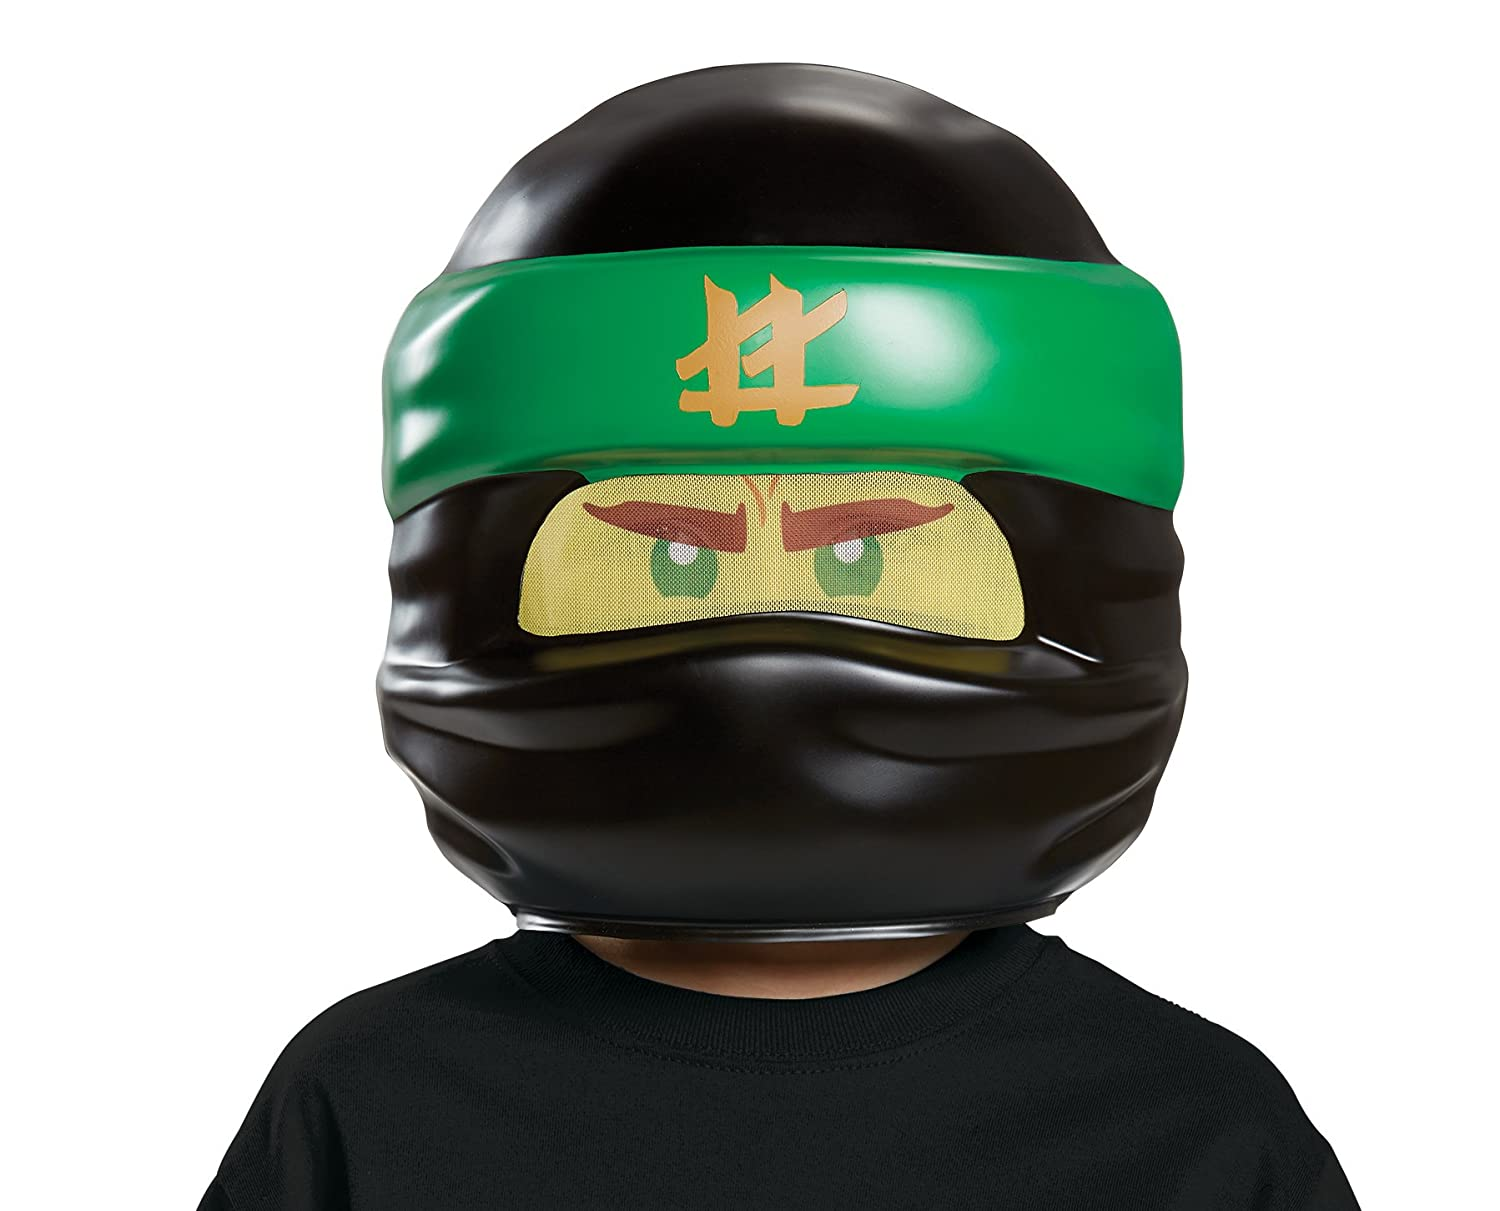 Lloyd LEGO Ninjago Movie Mask